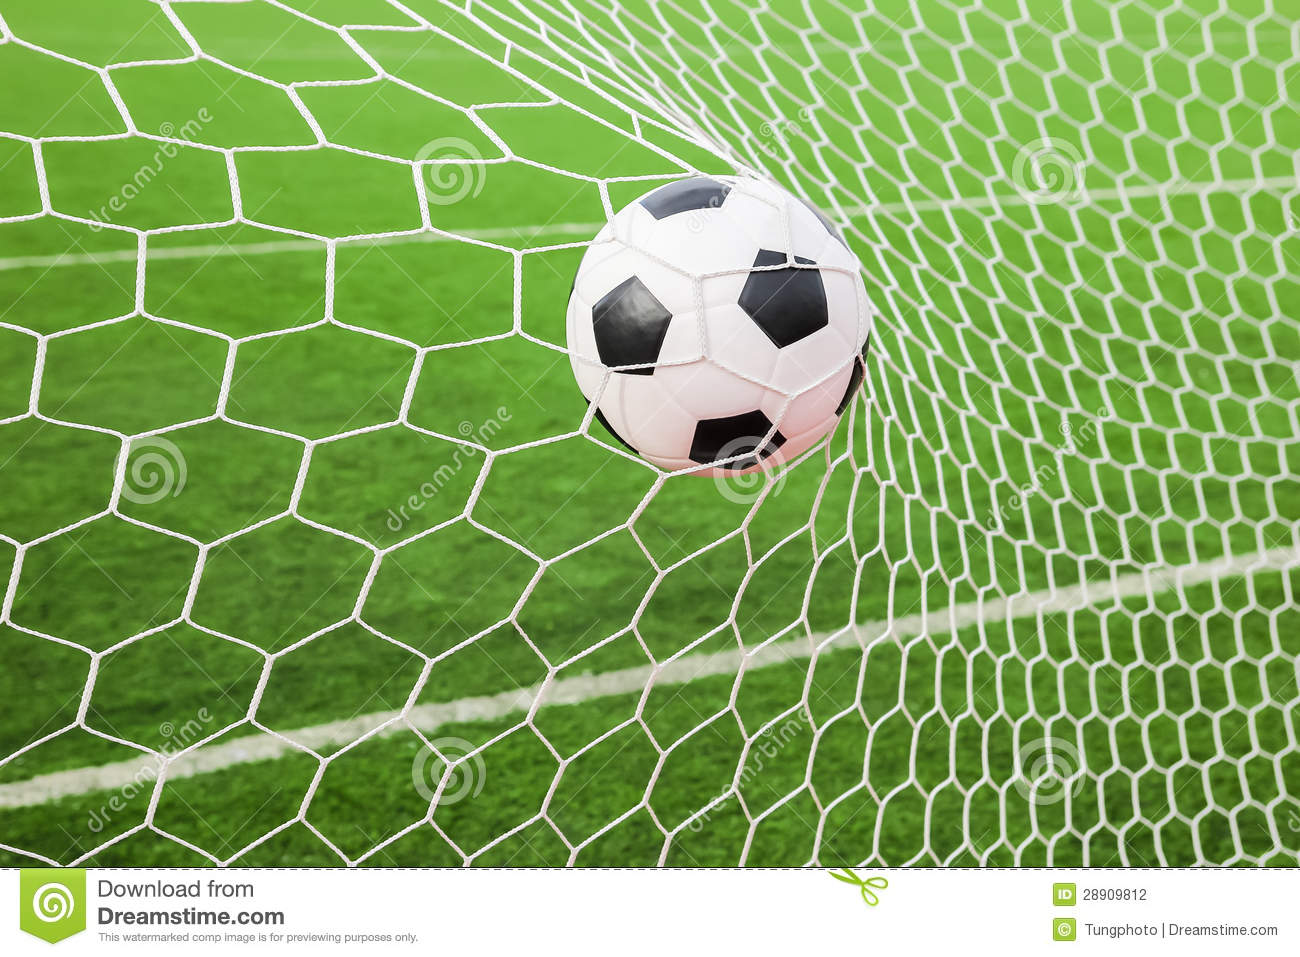 learn how to play football video download